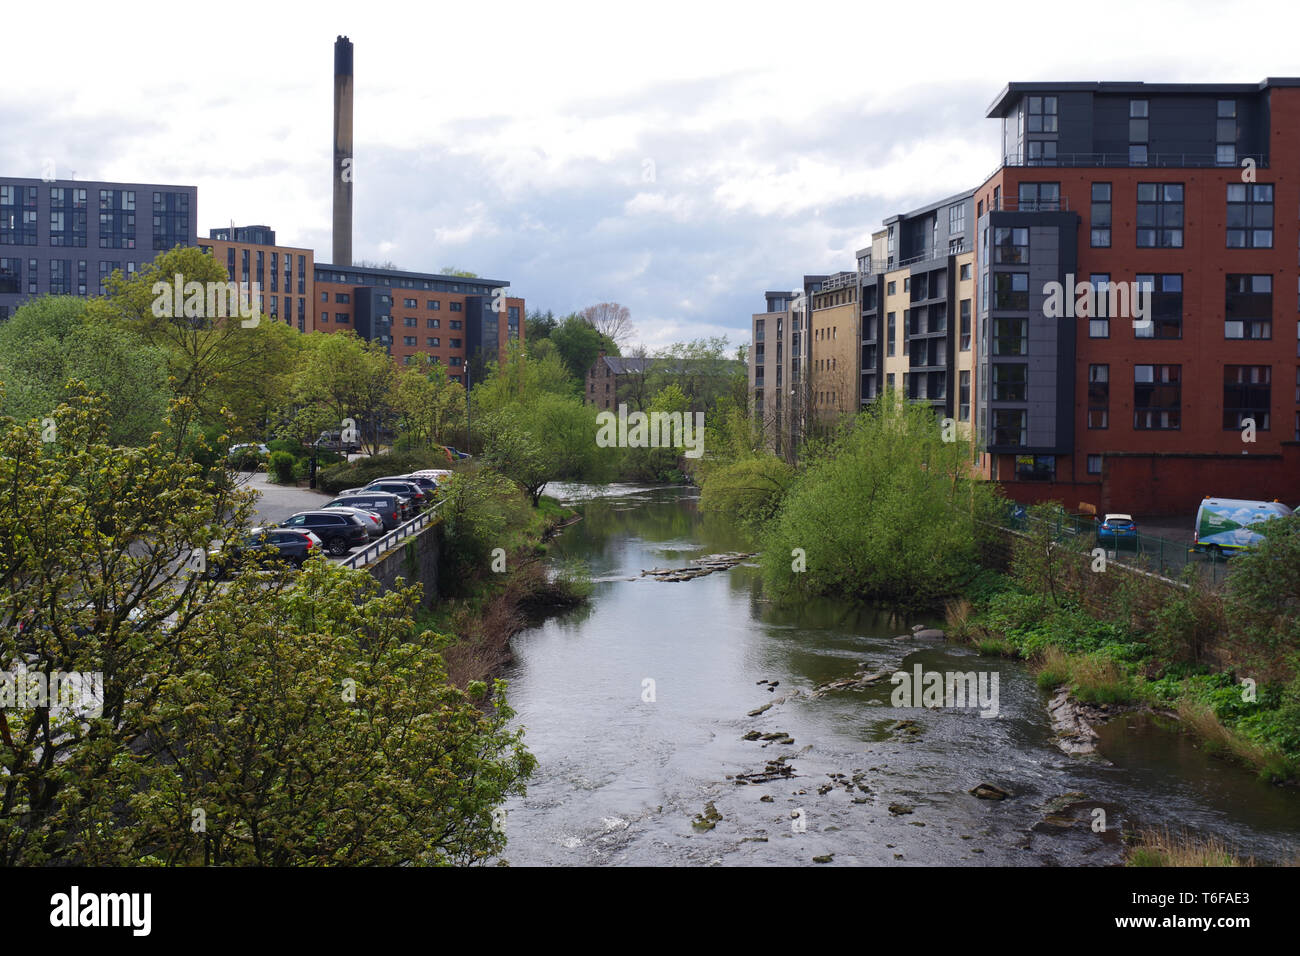 The River Kelvin in Partick. Modern flats on the right which used to be flour mills. Photograph taken from Partick bridge - Stock Image